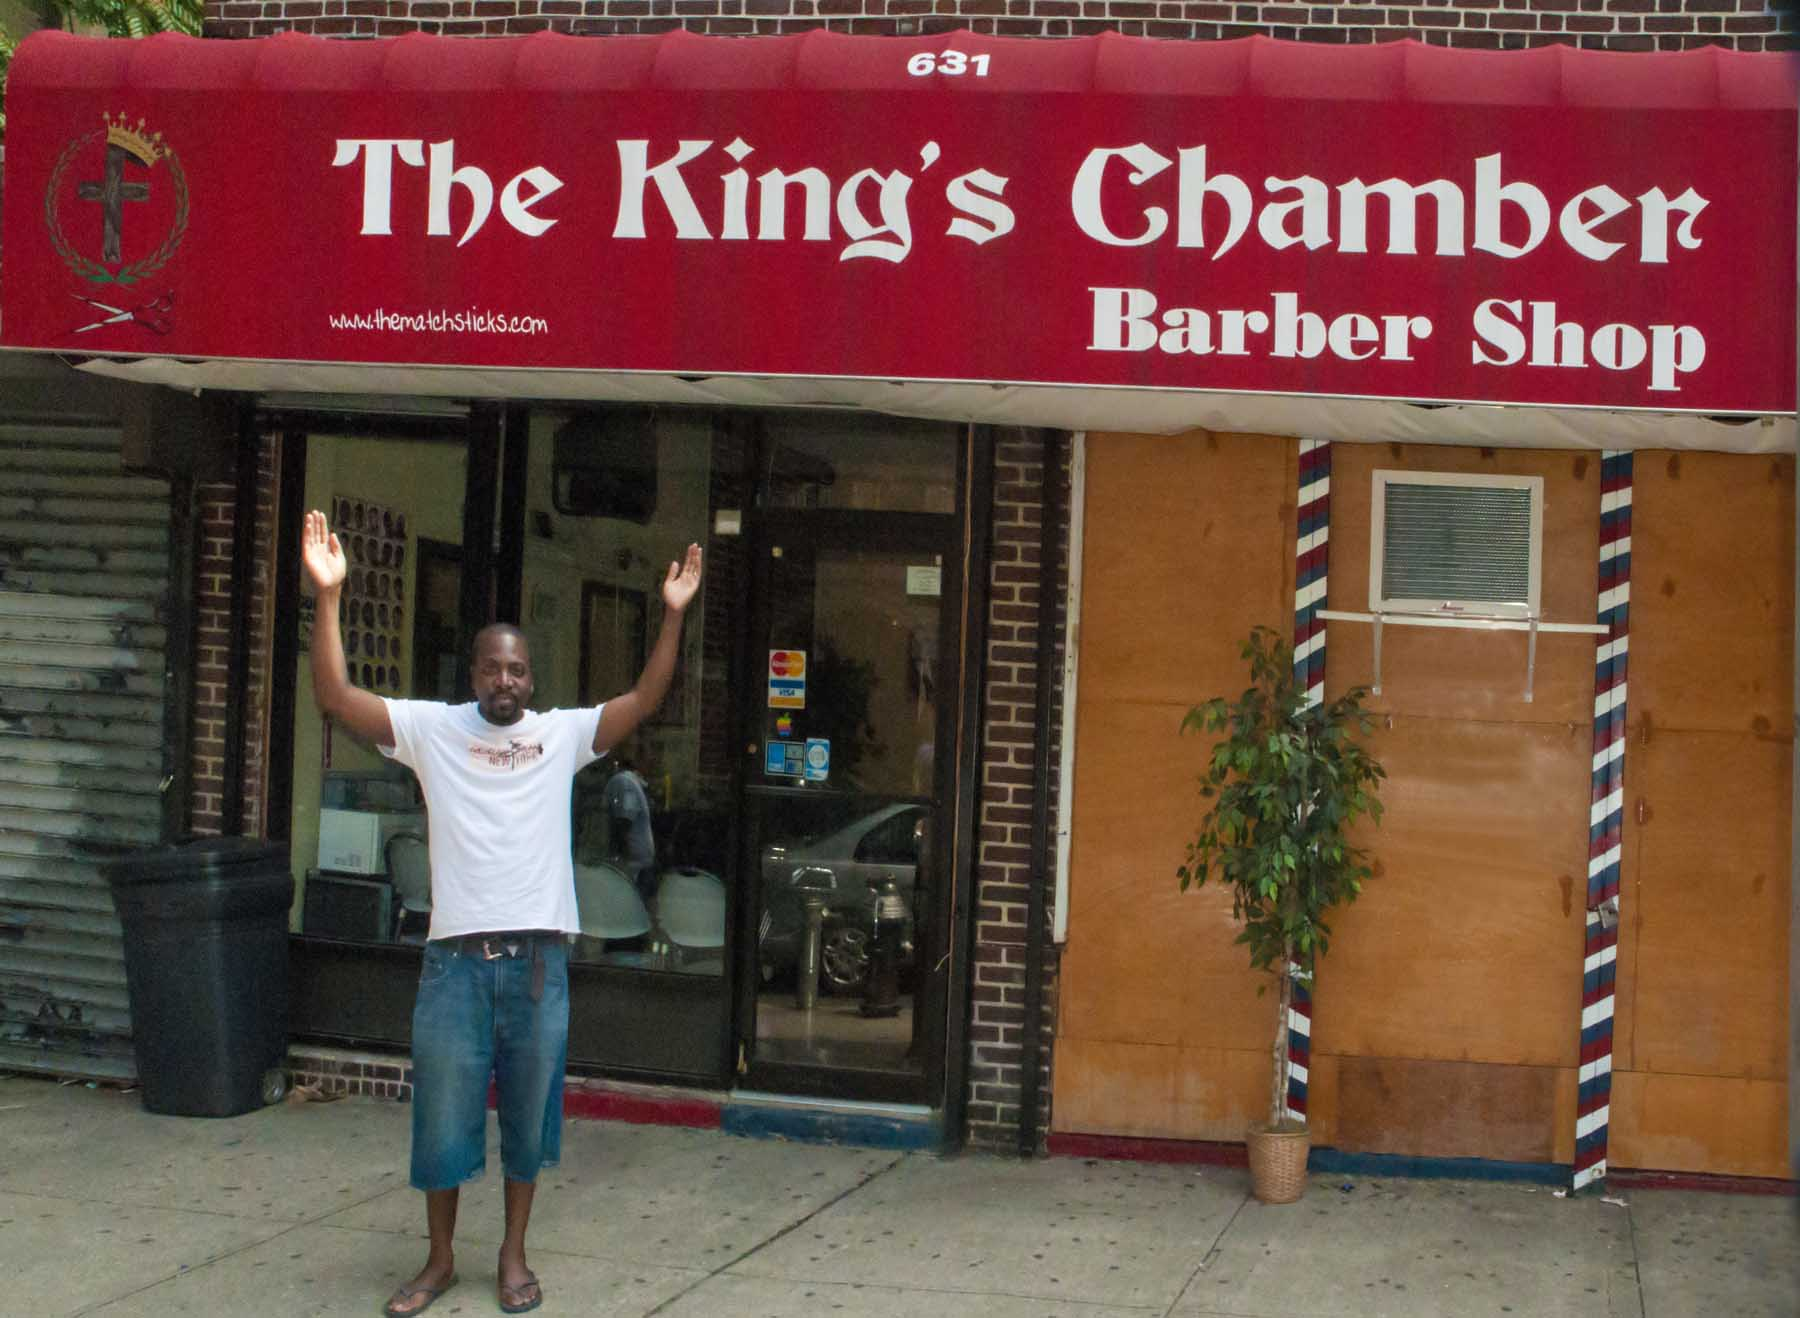 Hairstyling with Spirit @ The King's Chamber Barbershop, Flatbush, Brooklyn.